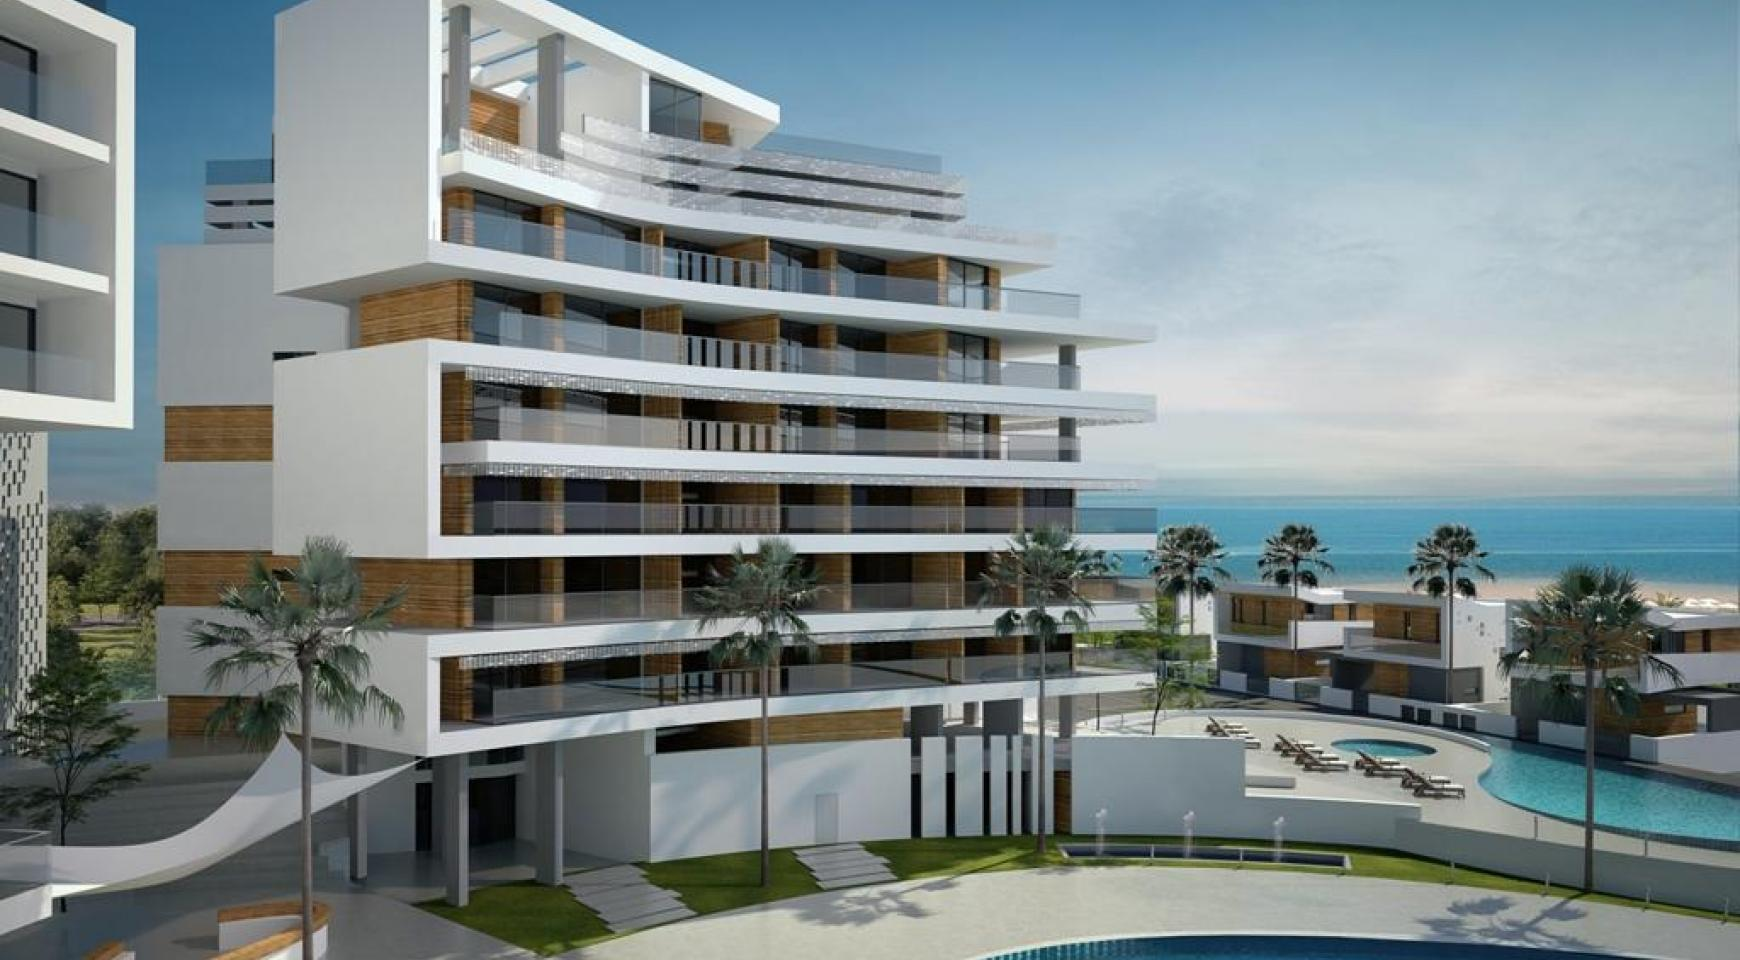 Contemporary One Bedroom Apartment in New Project by the Sea - 8